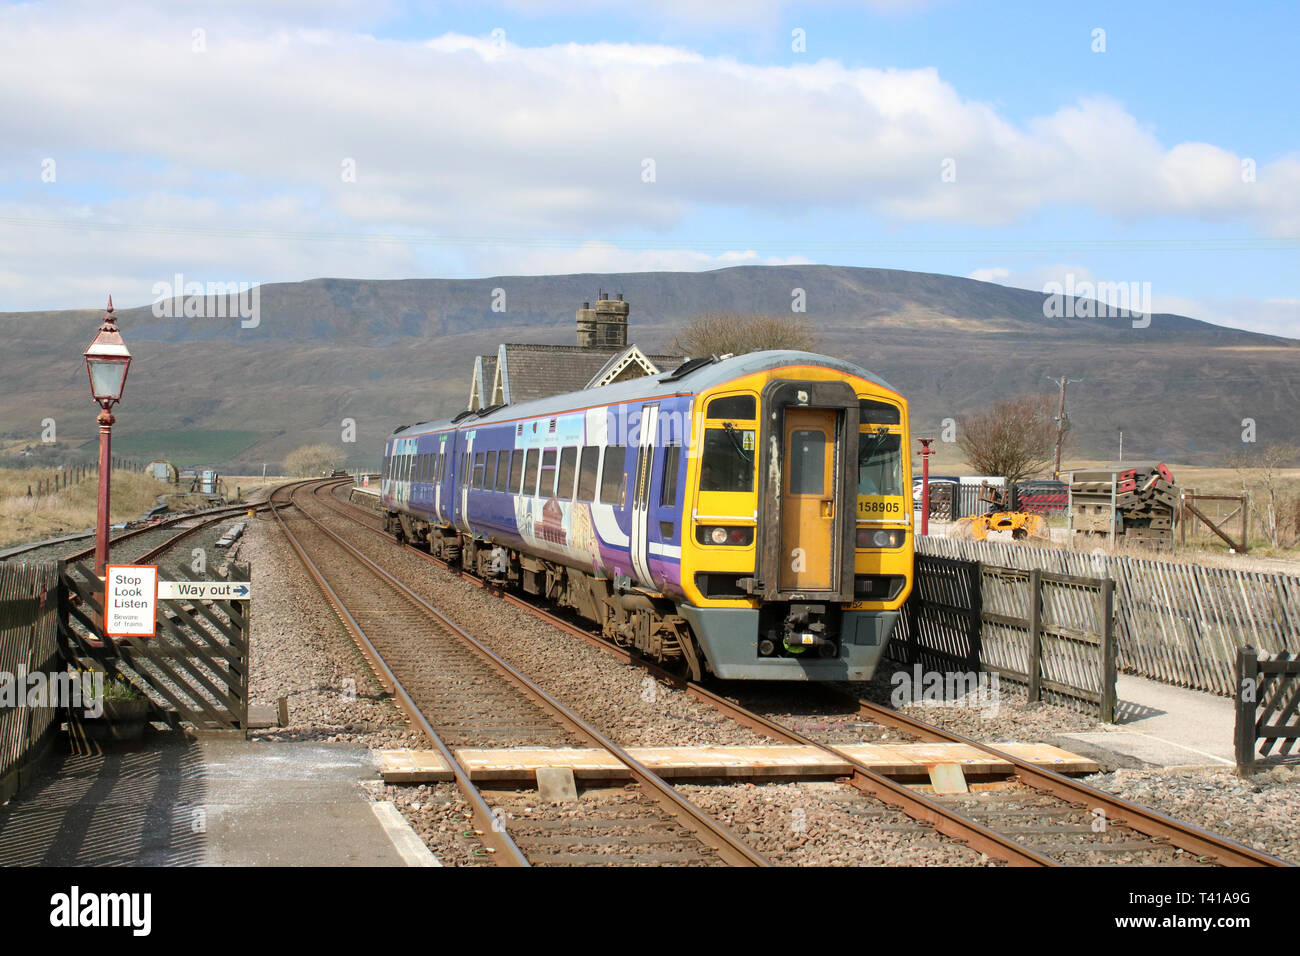 Class 158 express sprinter dmu passenger train in Northern livery leaving Ribblehead station on the Settle to Carlisle railway line 12th April 2019. - Stock Image